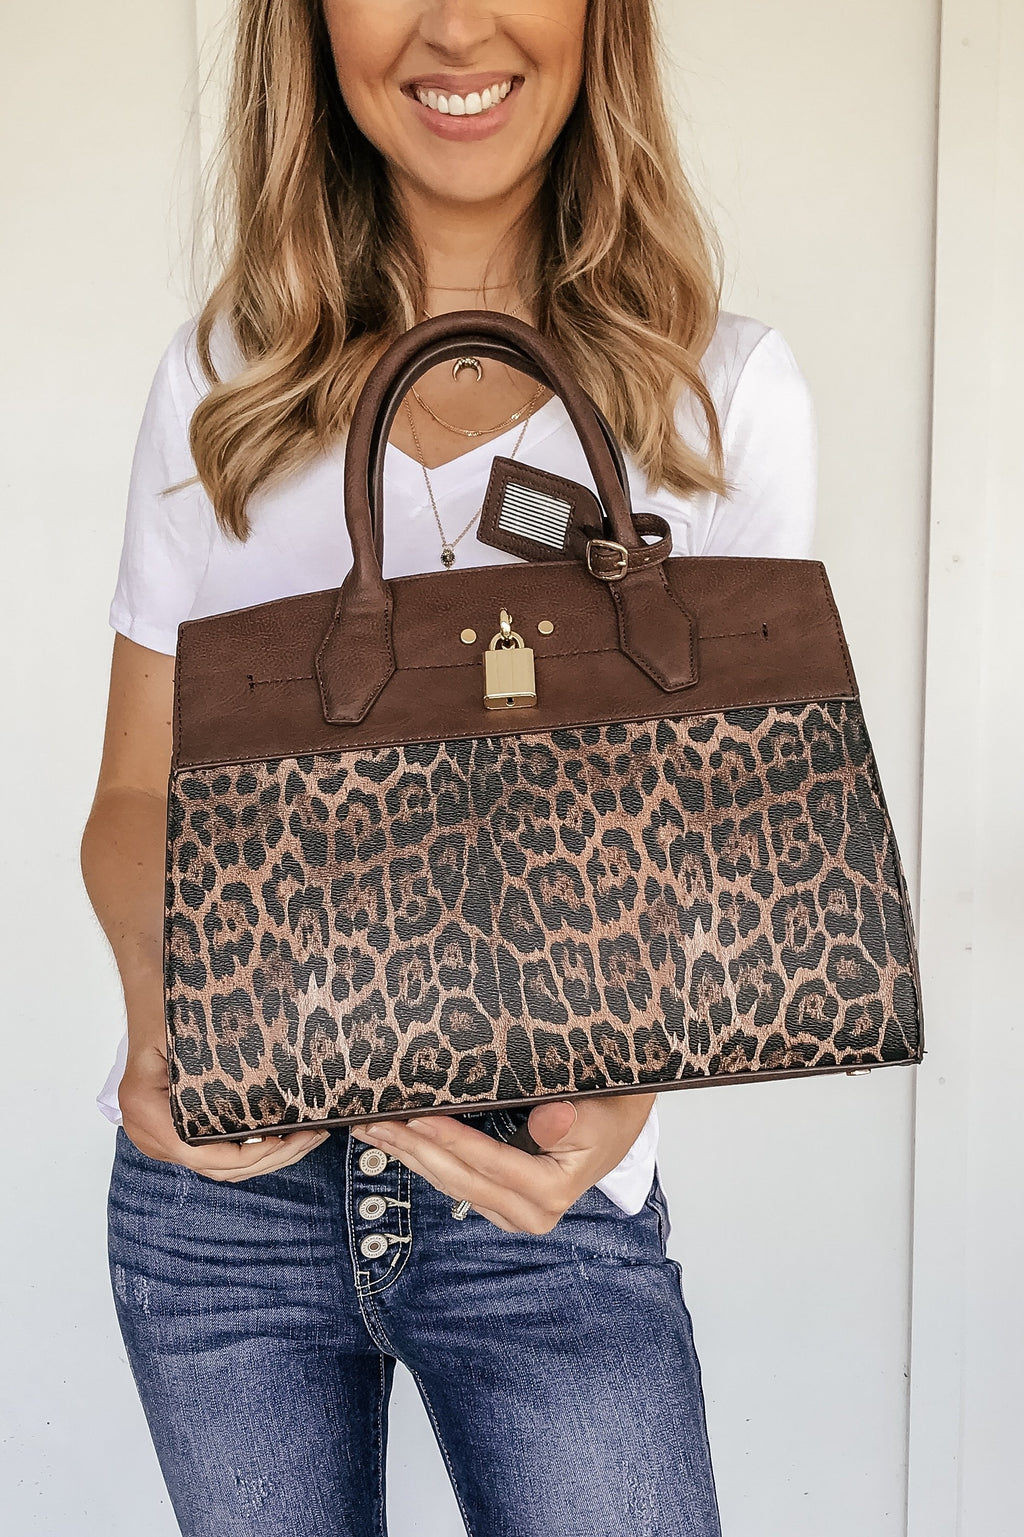 The Luxe Leopard Bag